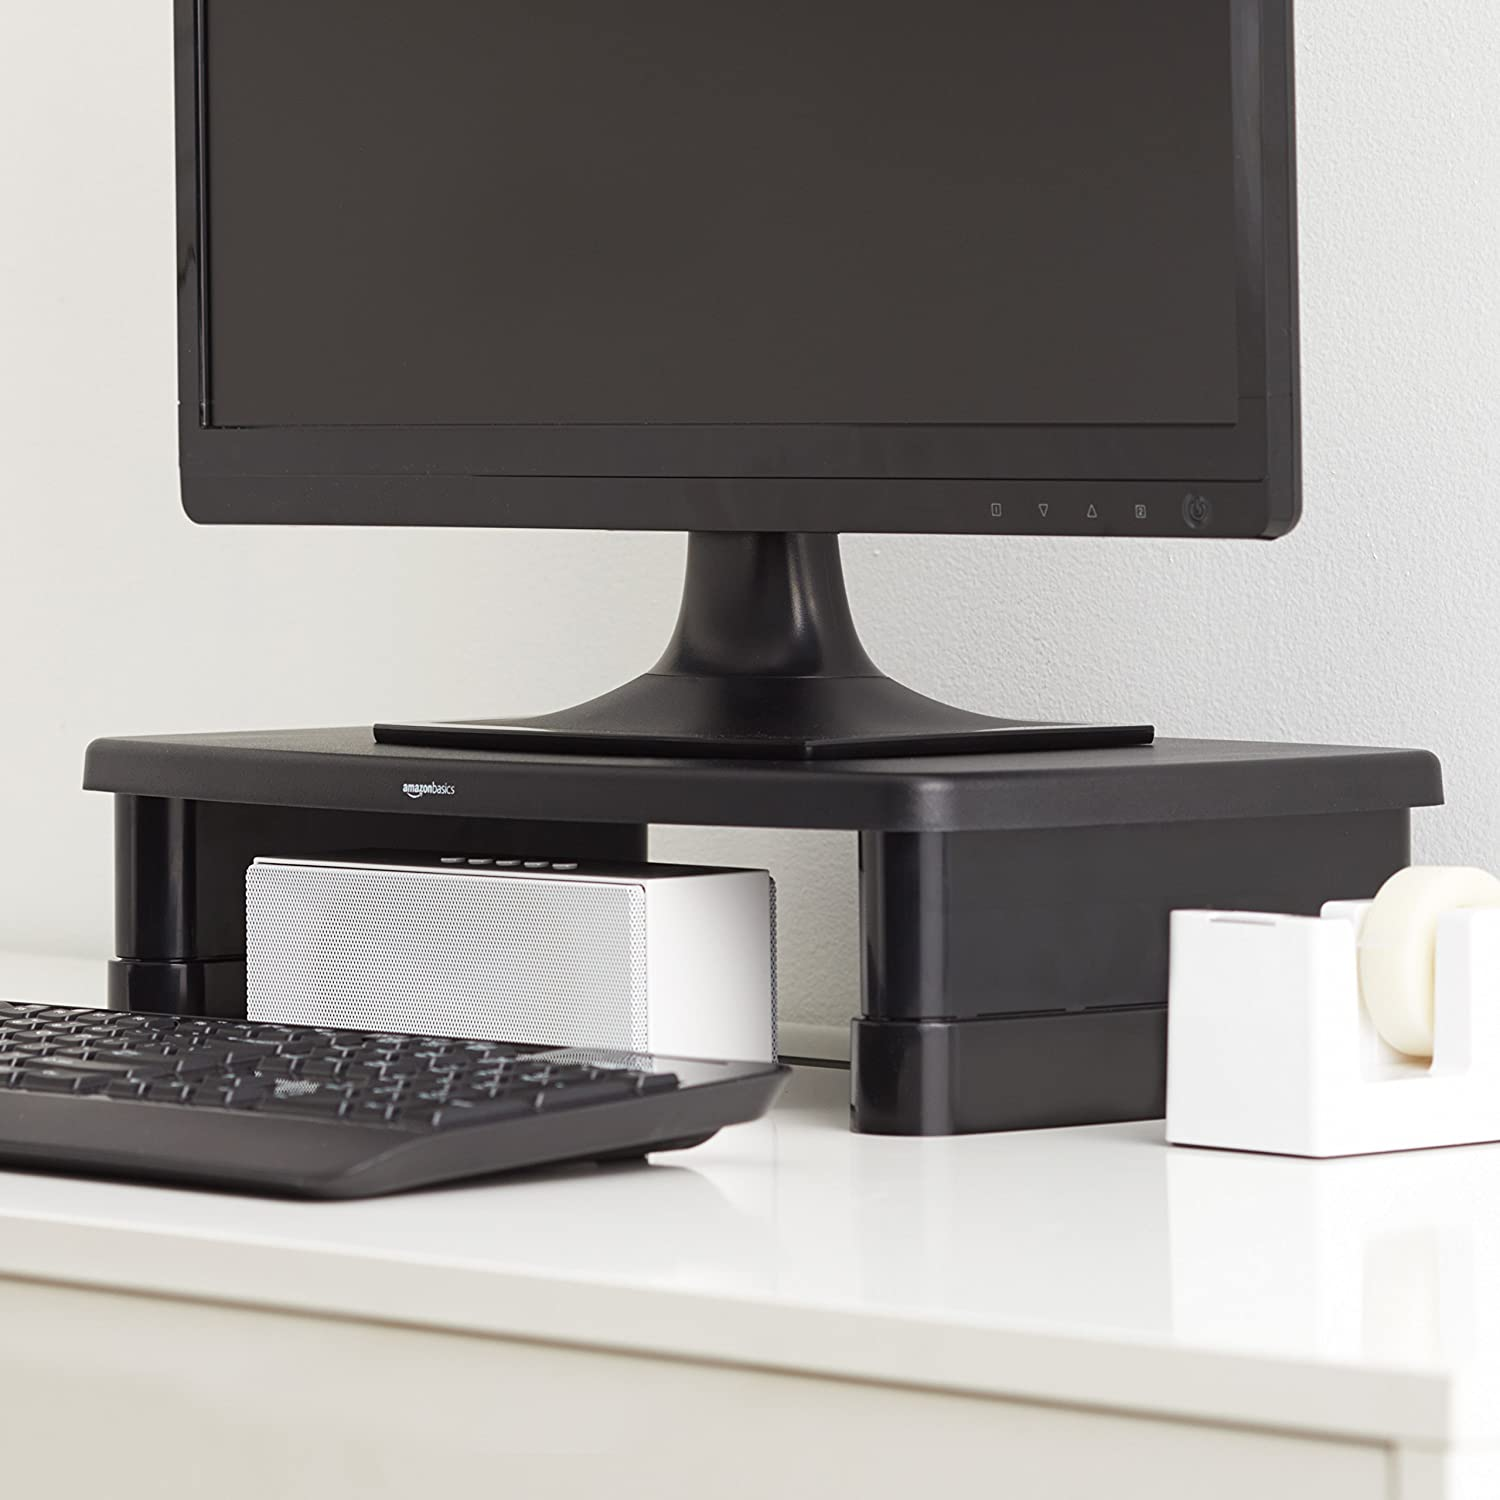 Basics Adjustable Monitor Stand /& Computer Speakers for Desktop or Laptop AC-Powered